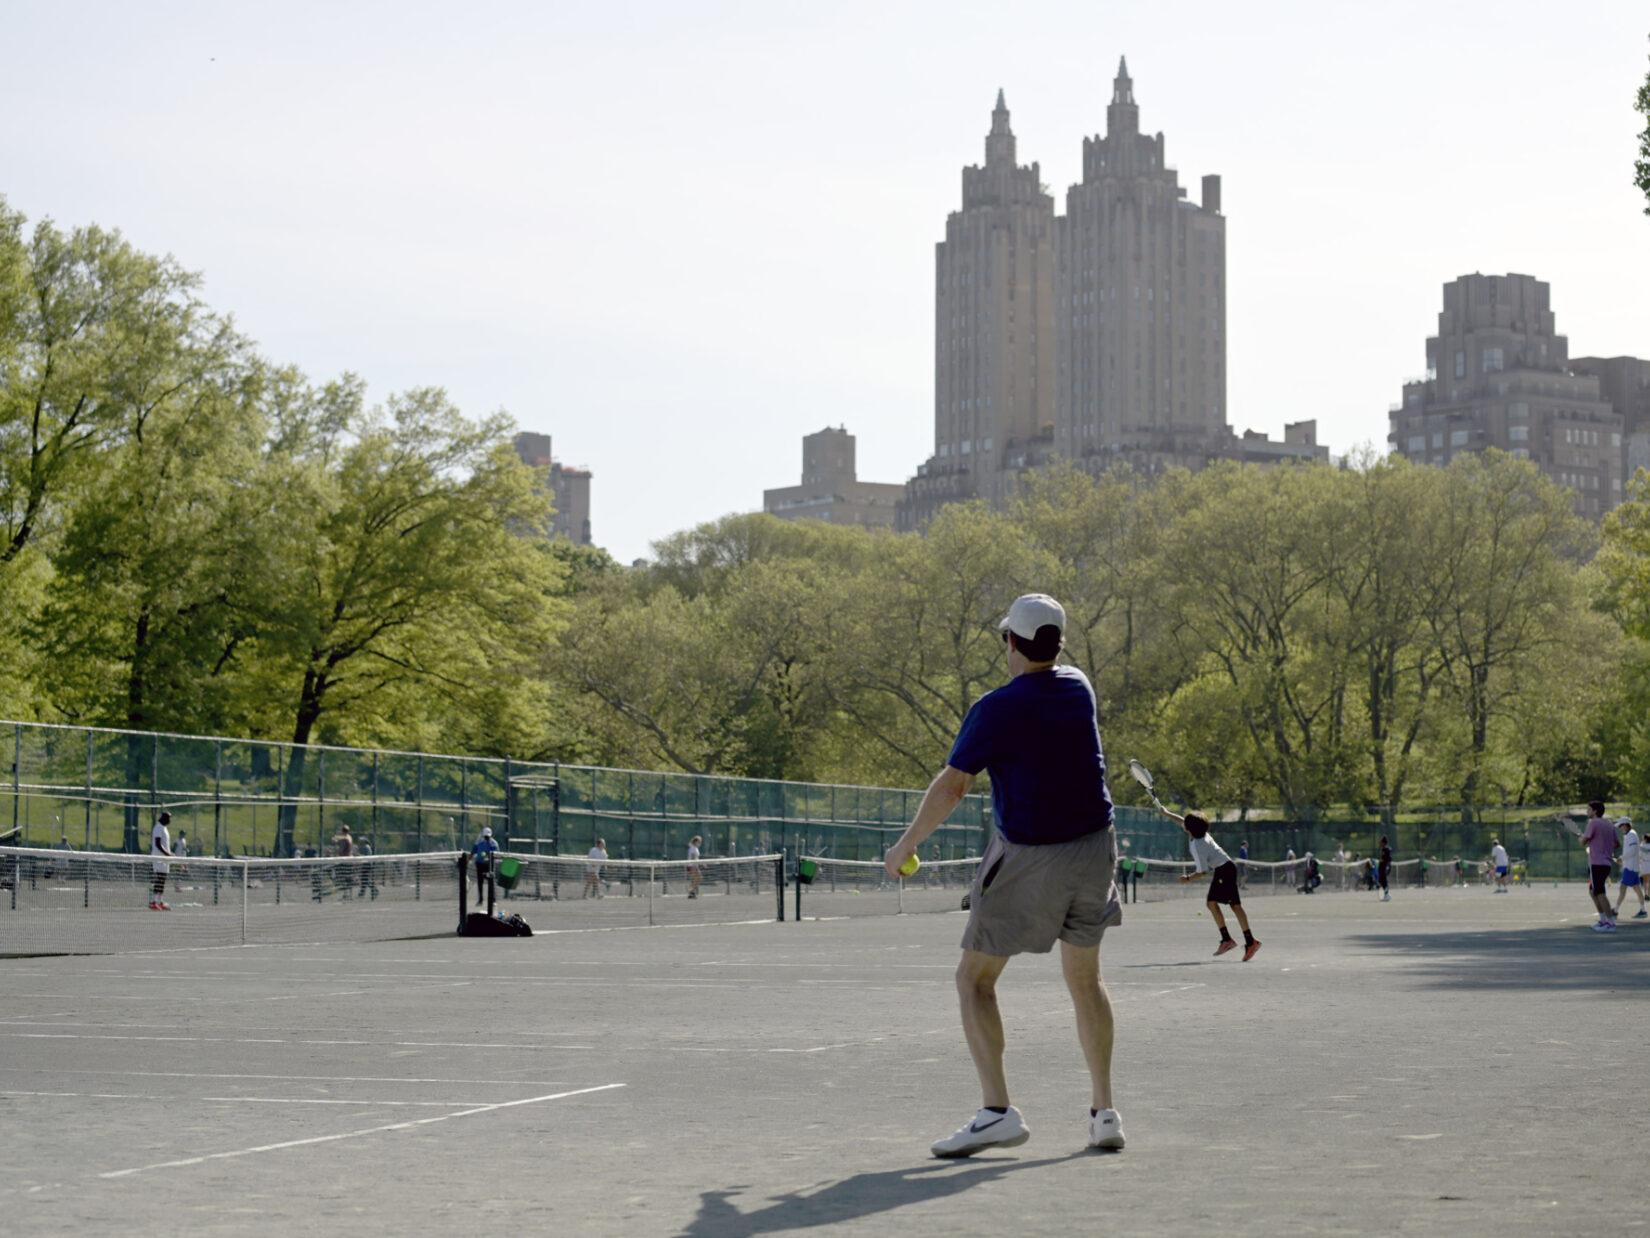 Players at the Central Park Tennis Center